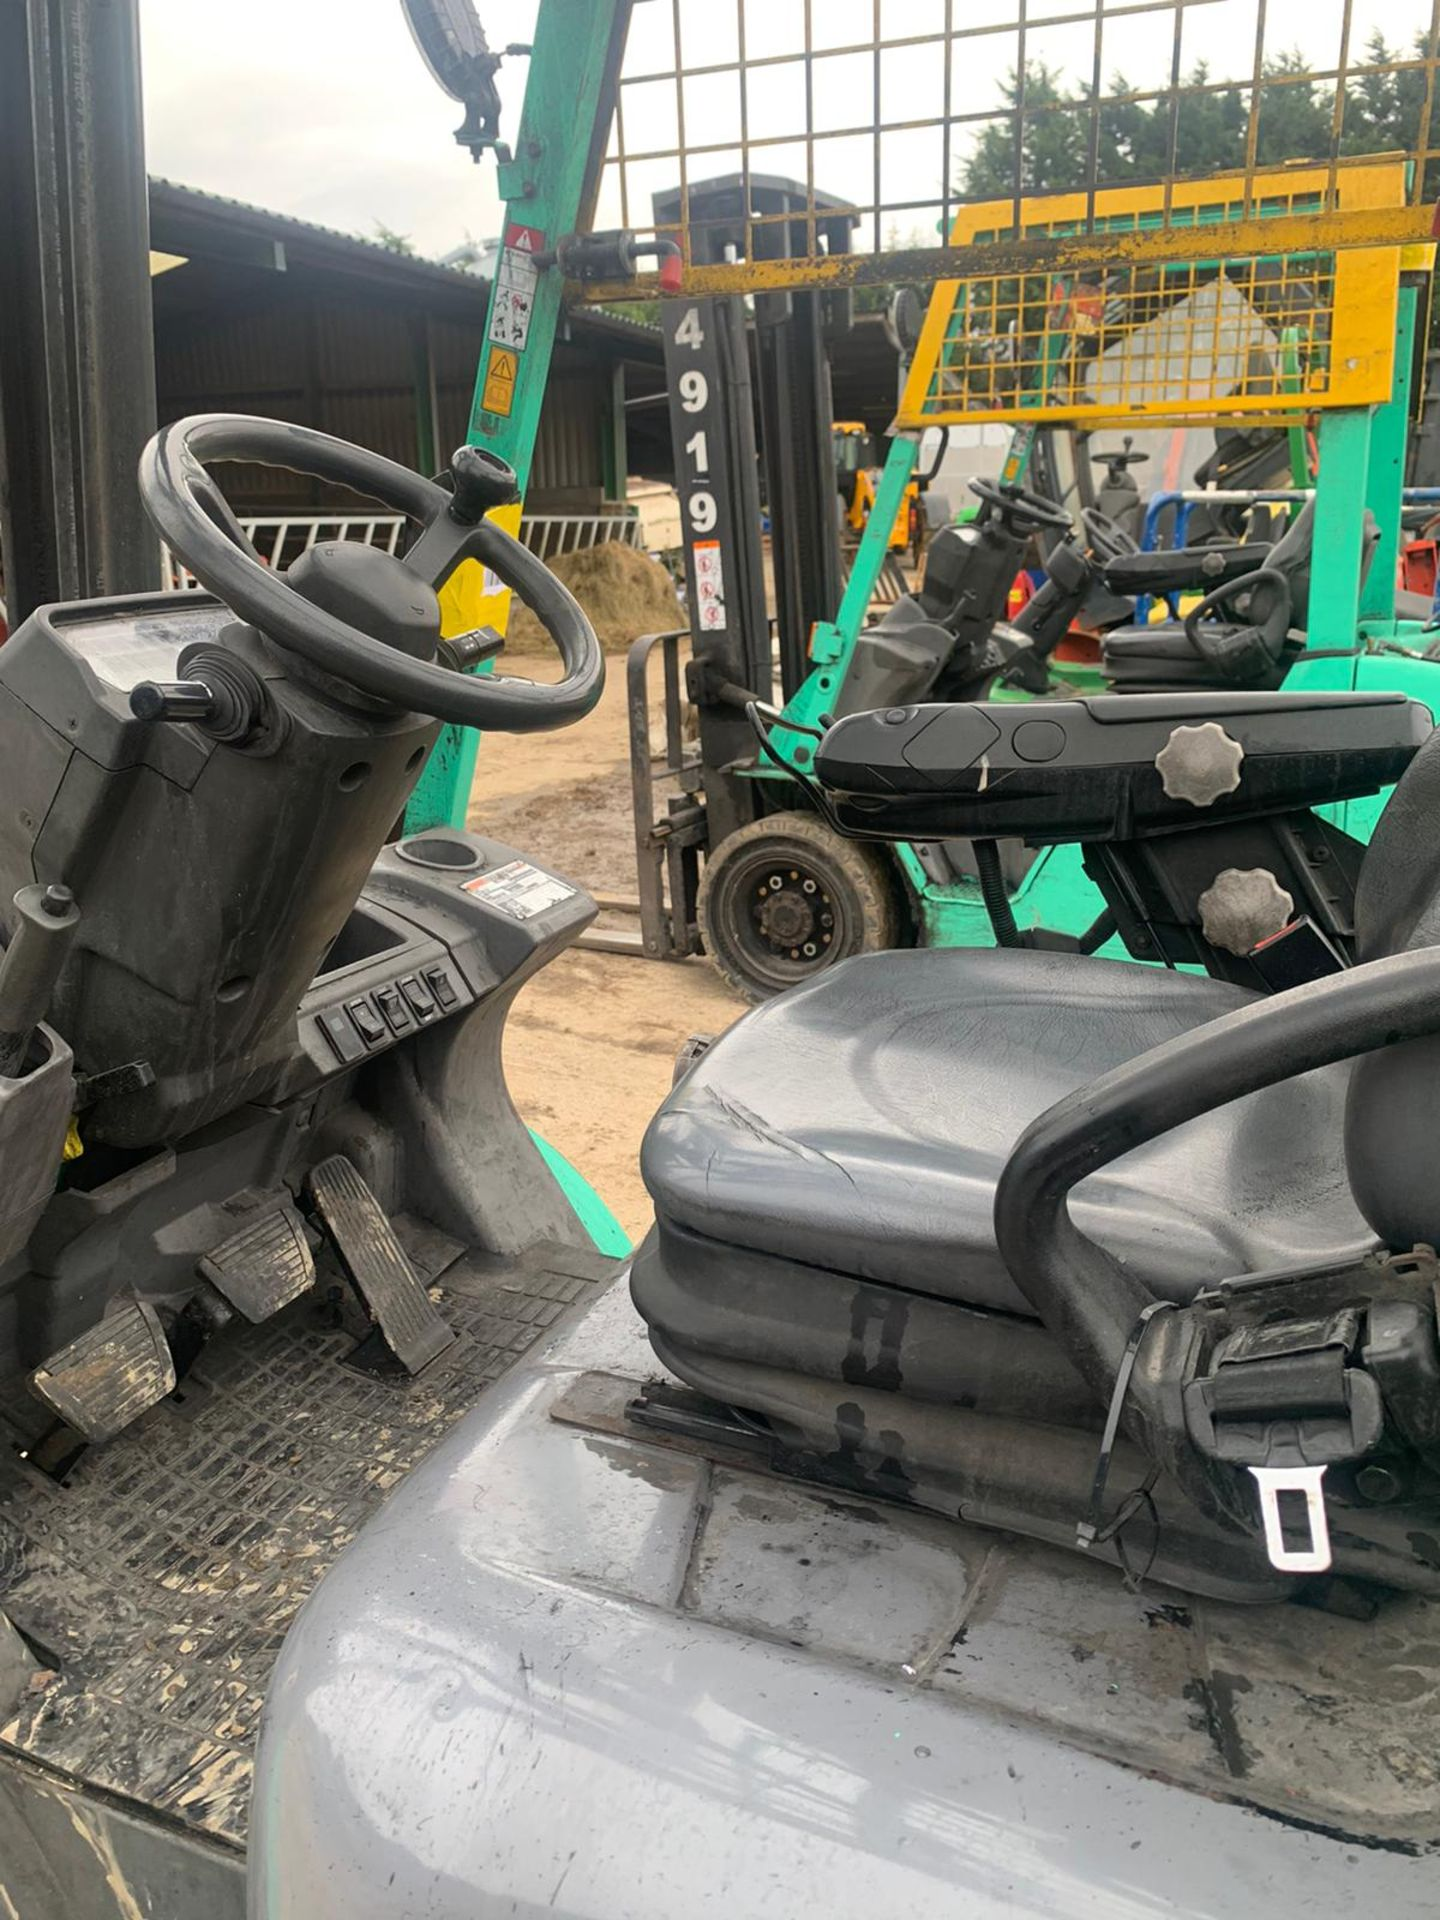 2015 MITSUBISHI FG25NT GAS FORKLIFT, RUNS, DRIVES, LIFTS, CLEAN MACHINE, SIDE SHIFT, CONTAINER SPEC - Image 5 of 5